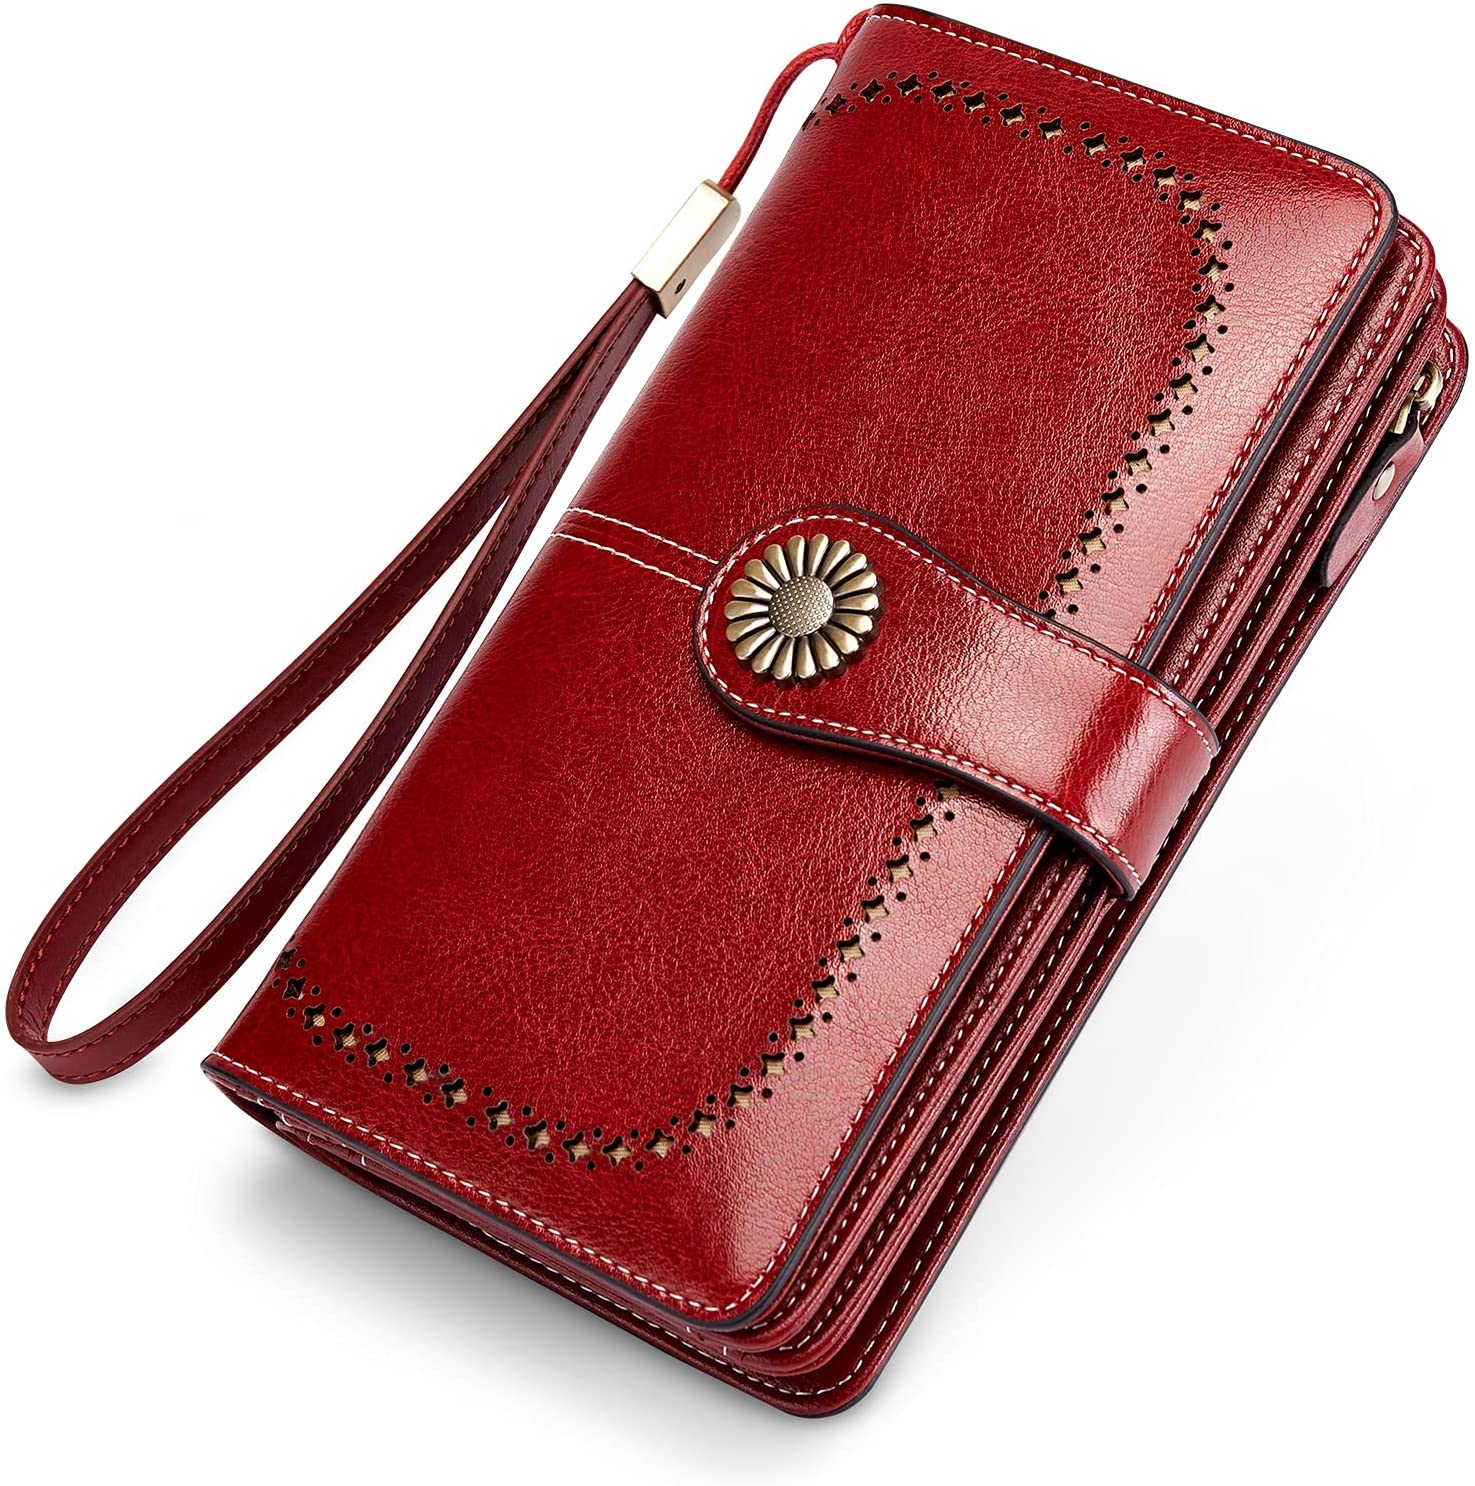 INSIFEEL Women's Wallets Large Capacity with RFID Protection Genuine Leather Wristlet Handbags (Red)